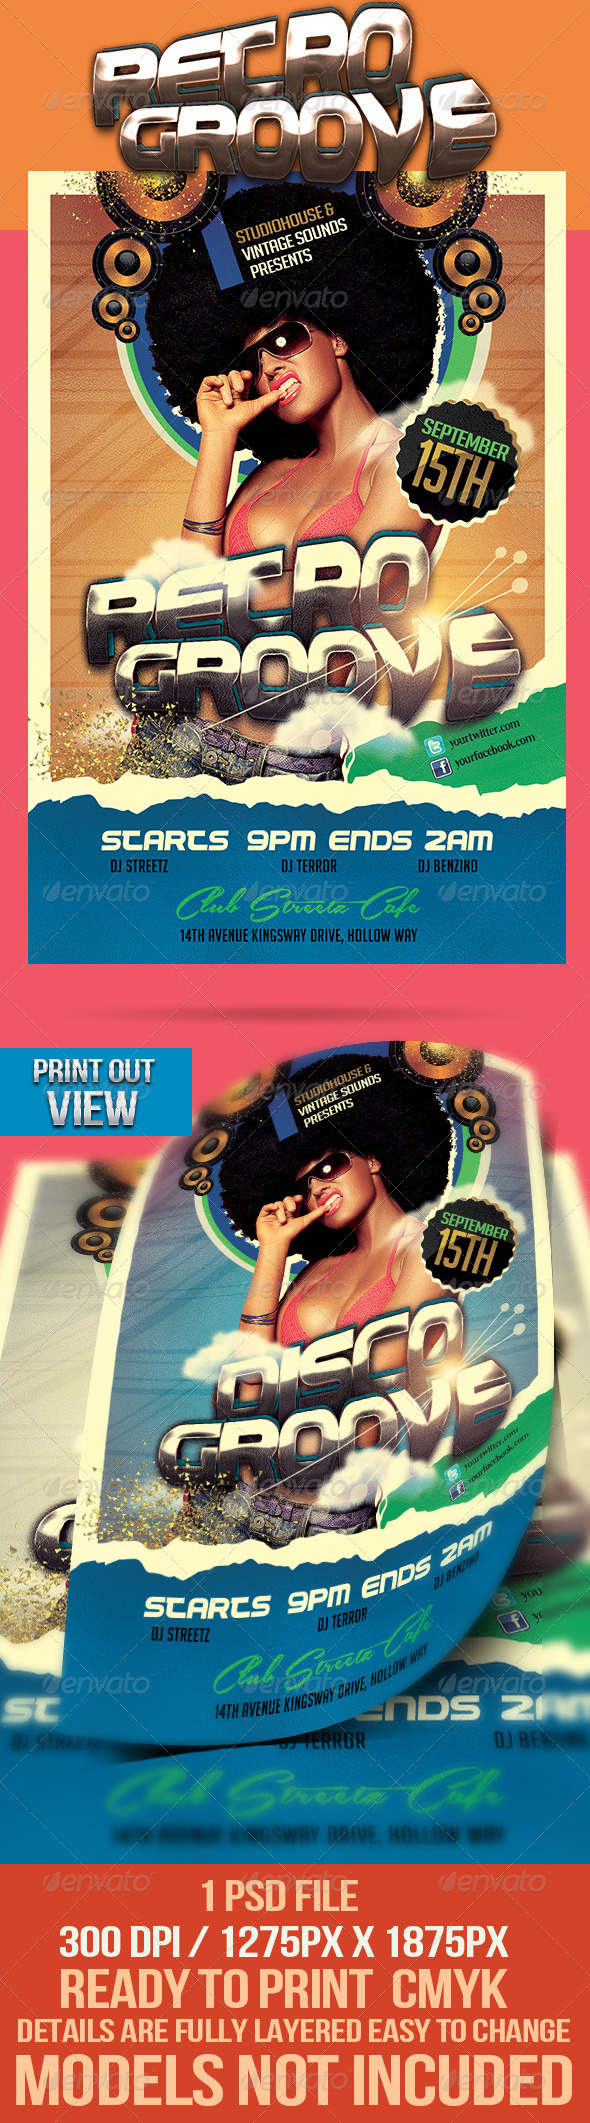 GraphicRiver Retro Groove Party Flyer 4357967